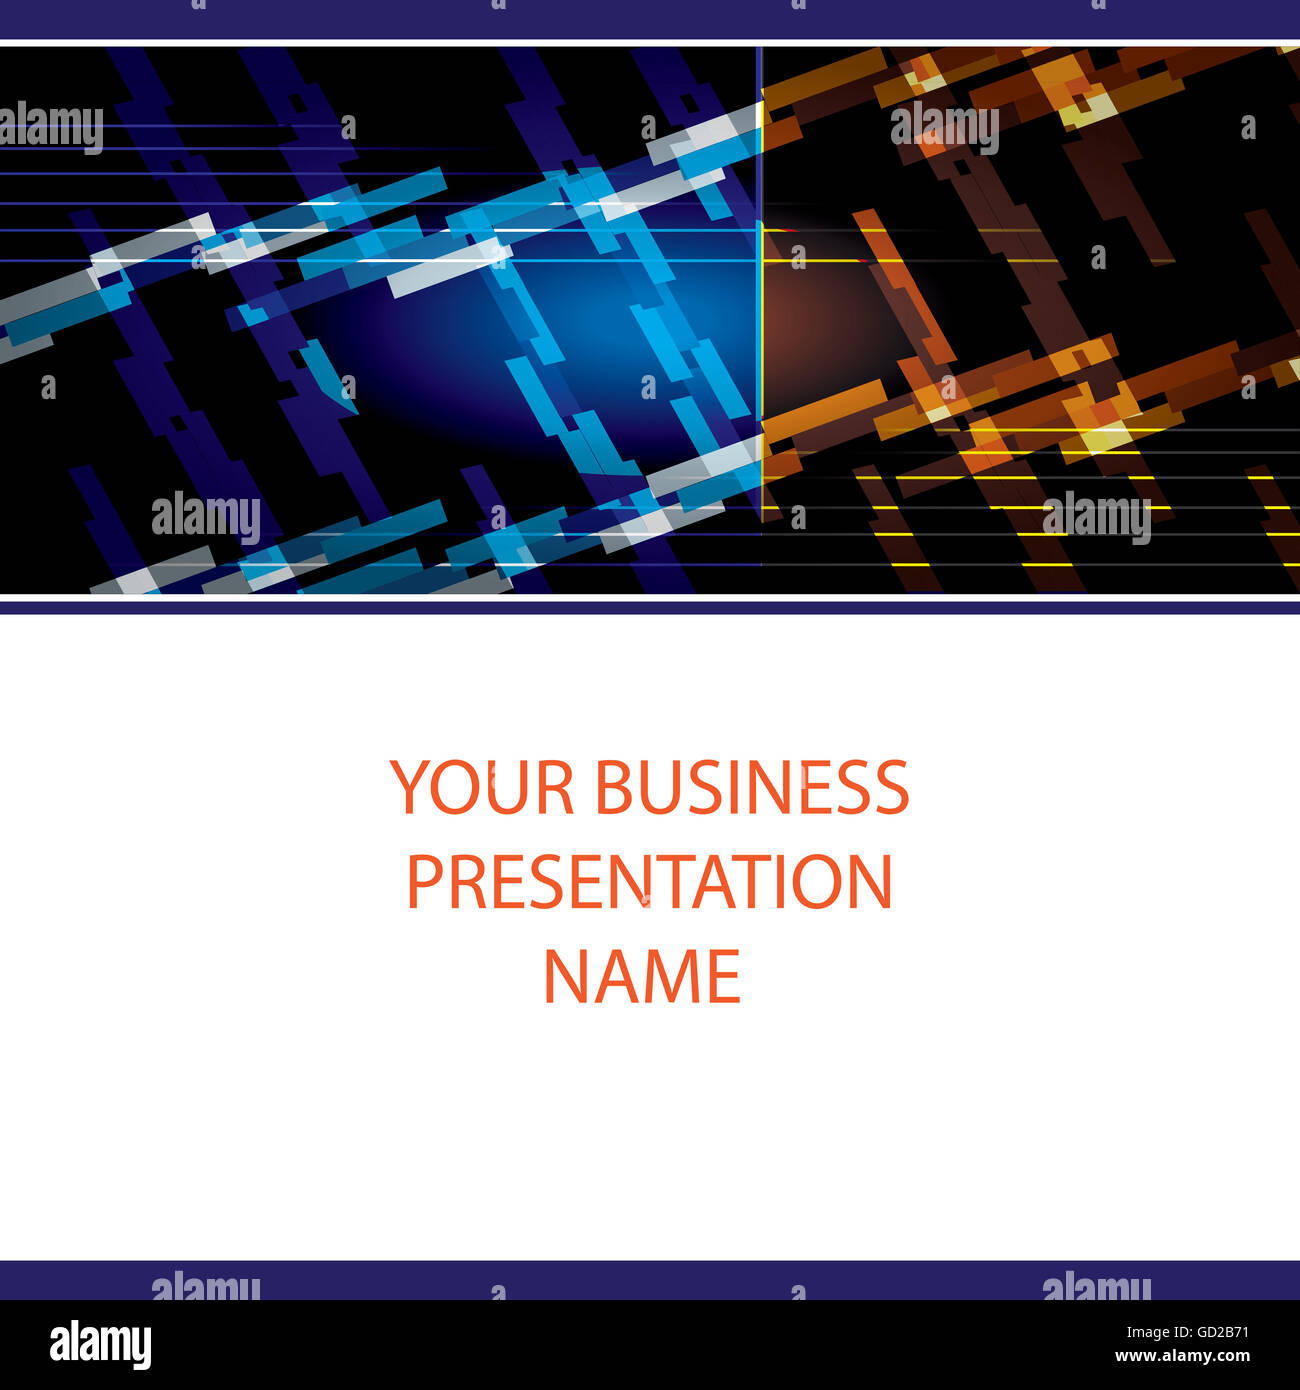 An abstract creative banner or an opening slide for any corporate business presentation. - Stock Image